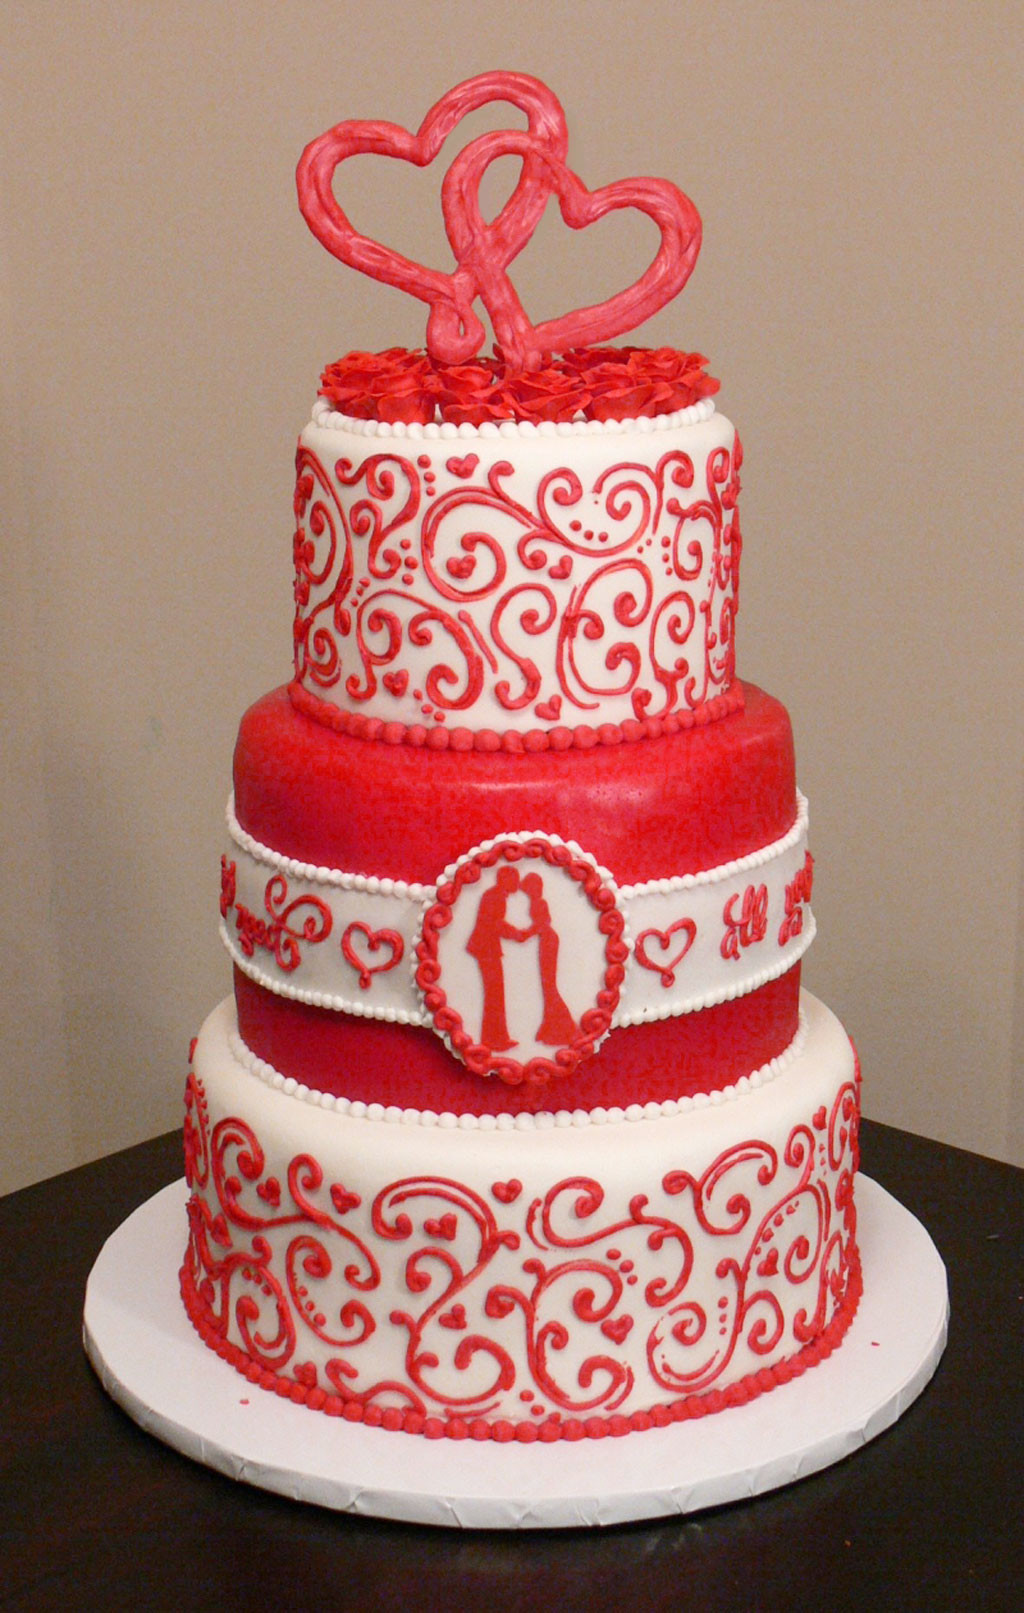 Valentines Wedding Cakes  Valentines Wedding Cake Wedding Cake Cake Ideas by